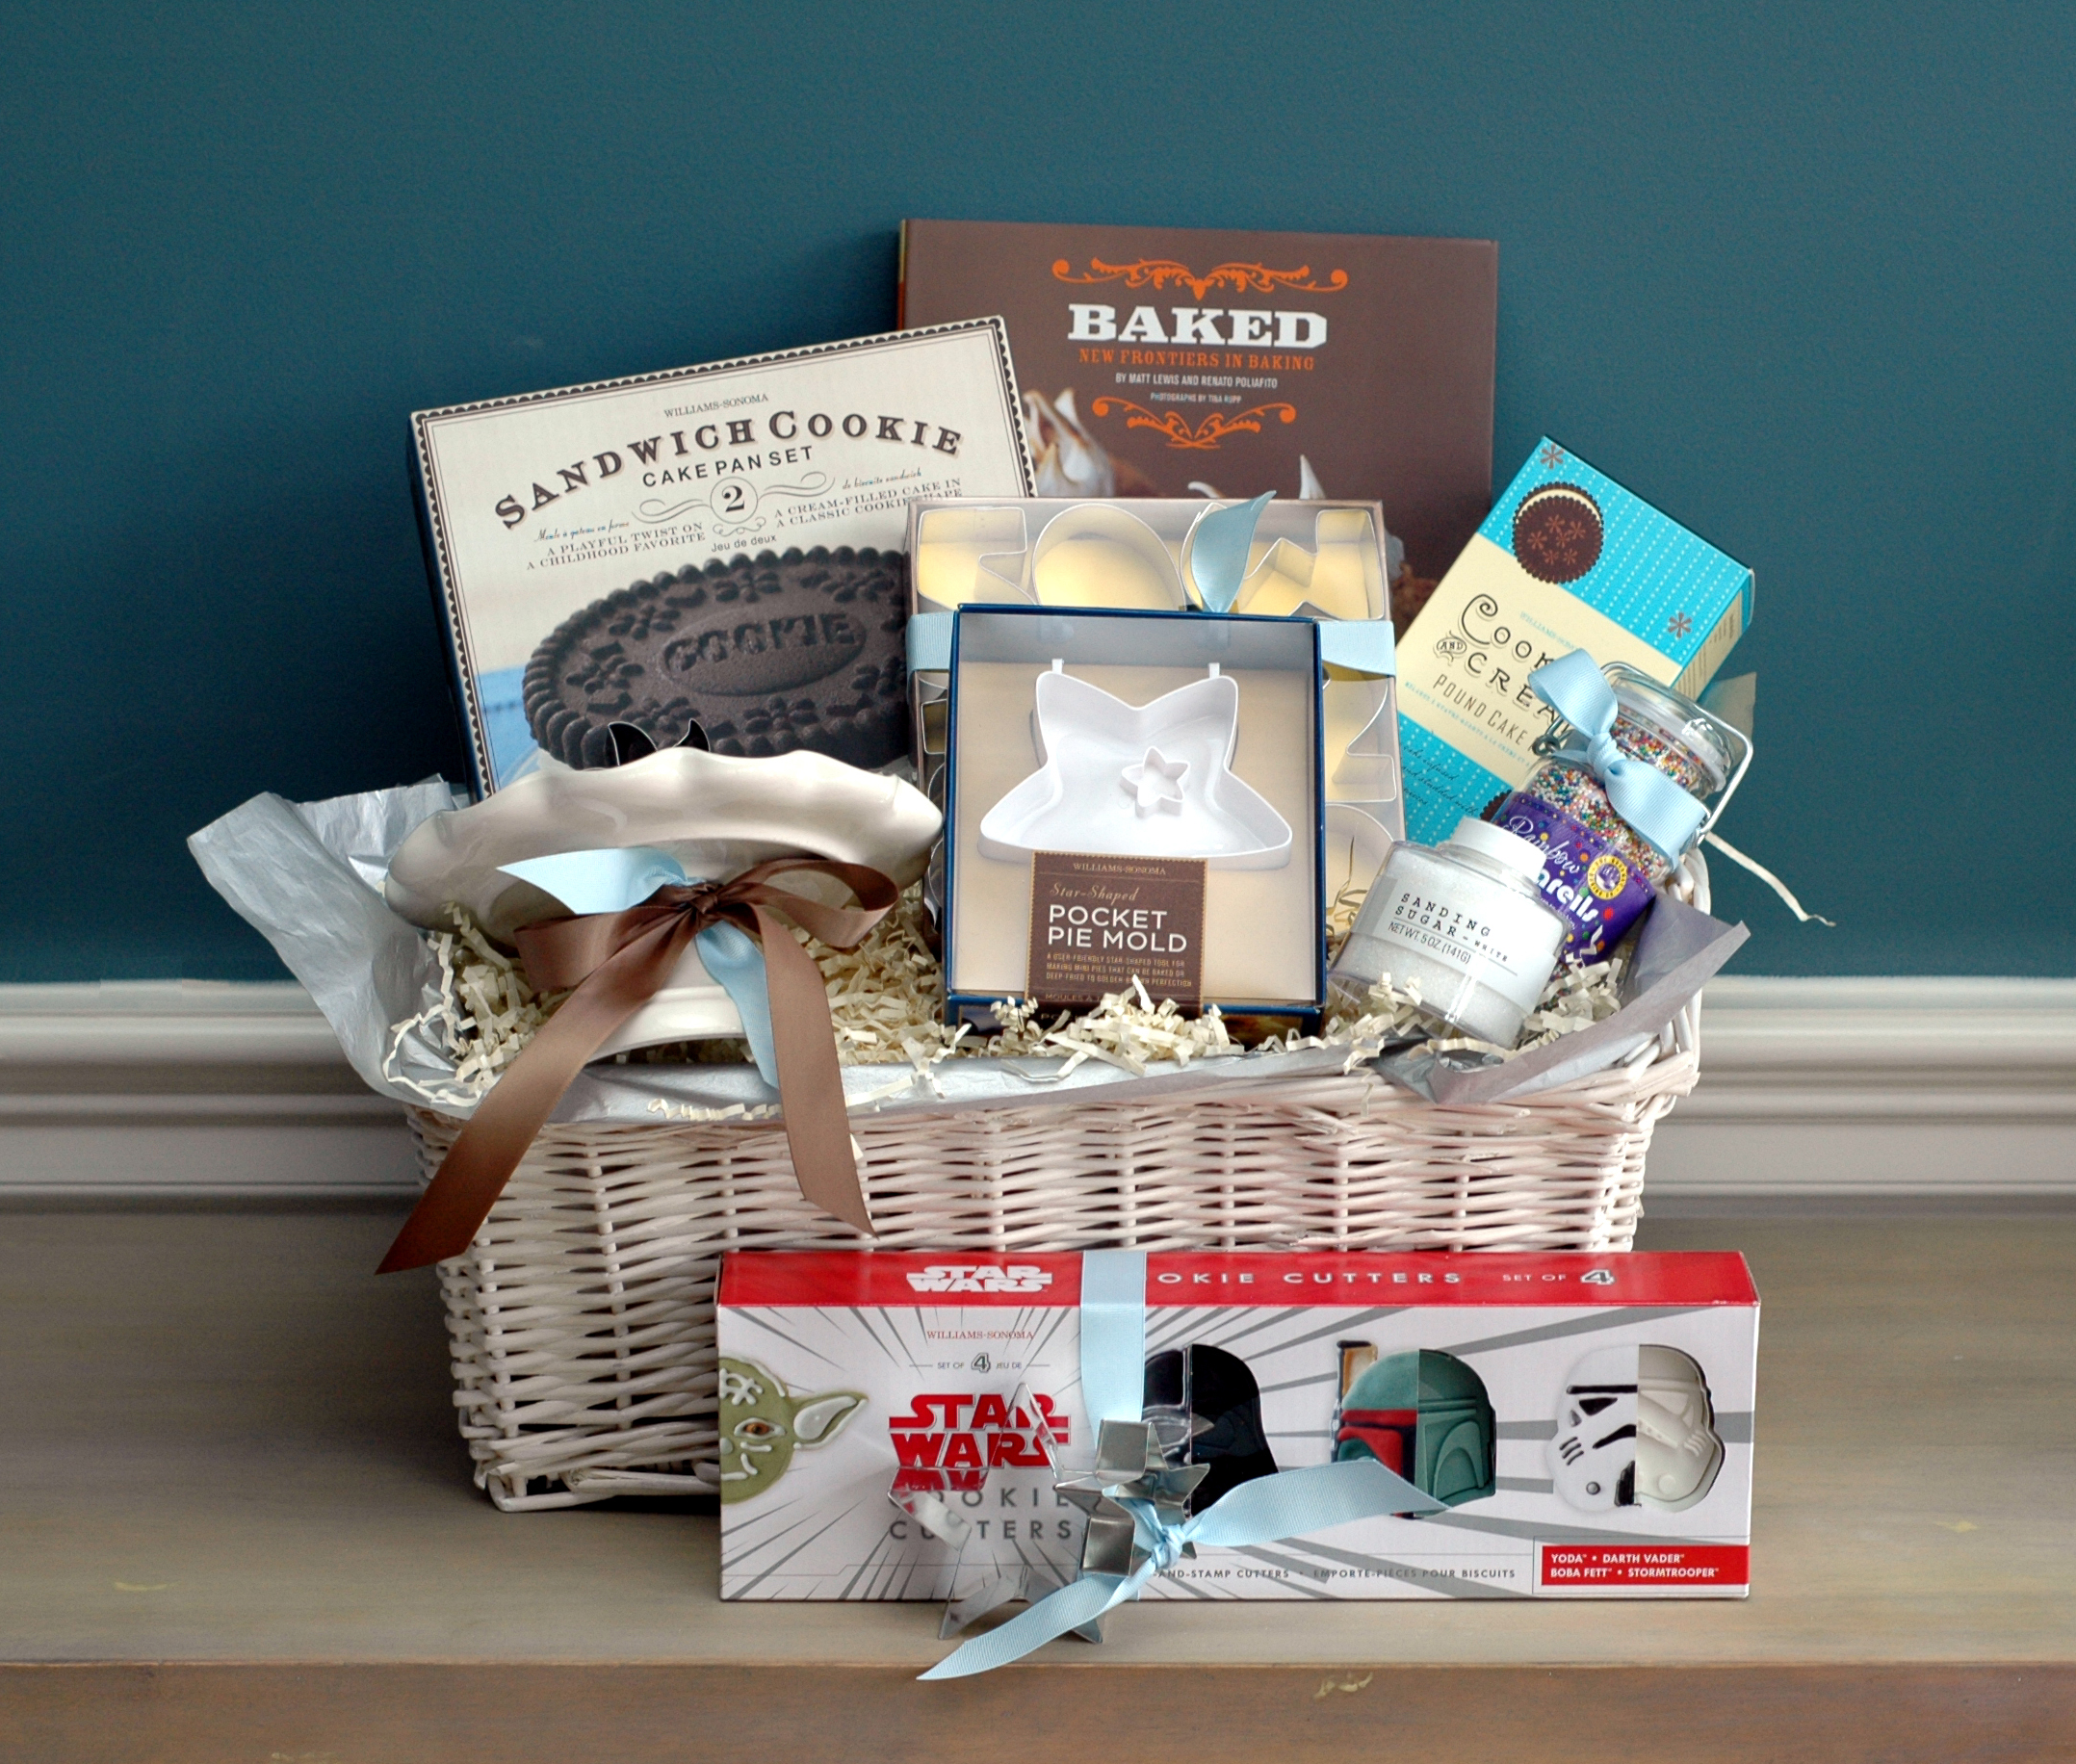 Charity gift baskets bunny cakes dsc8649 copy negle Gallery